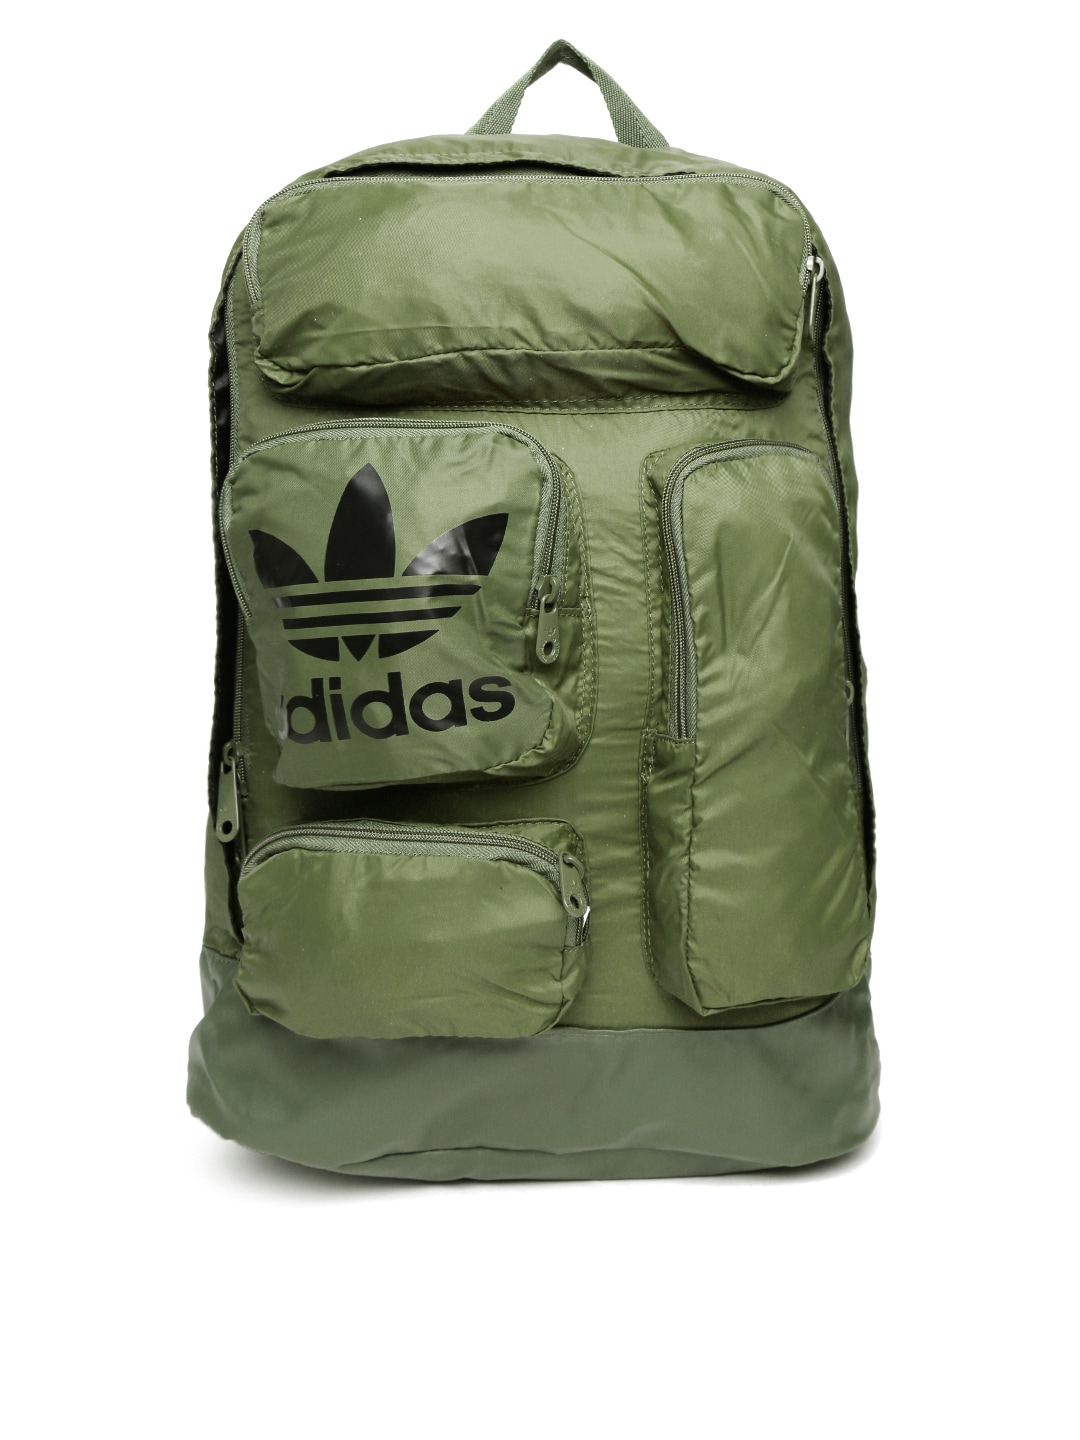 81124e50ed38 Adidas originals ay7882 Unisex Olive Green Patch Laptop Backpack ...